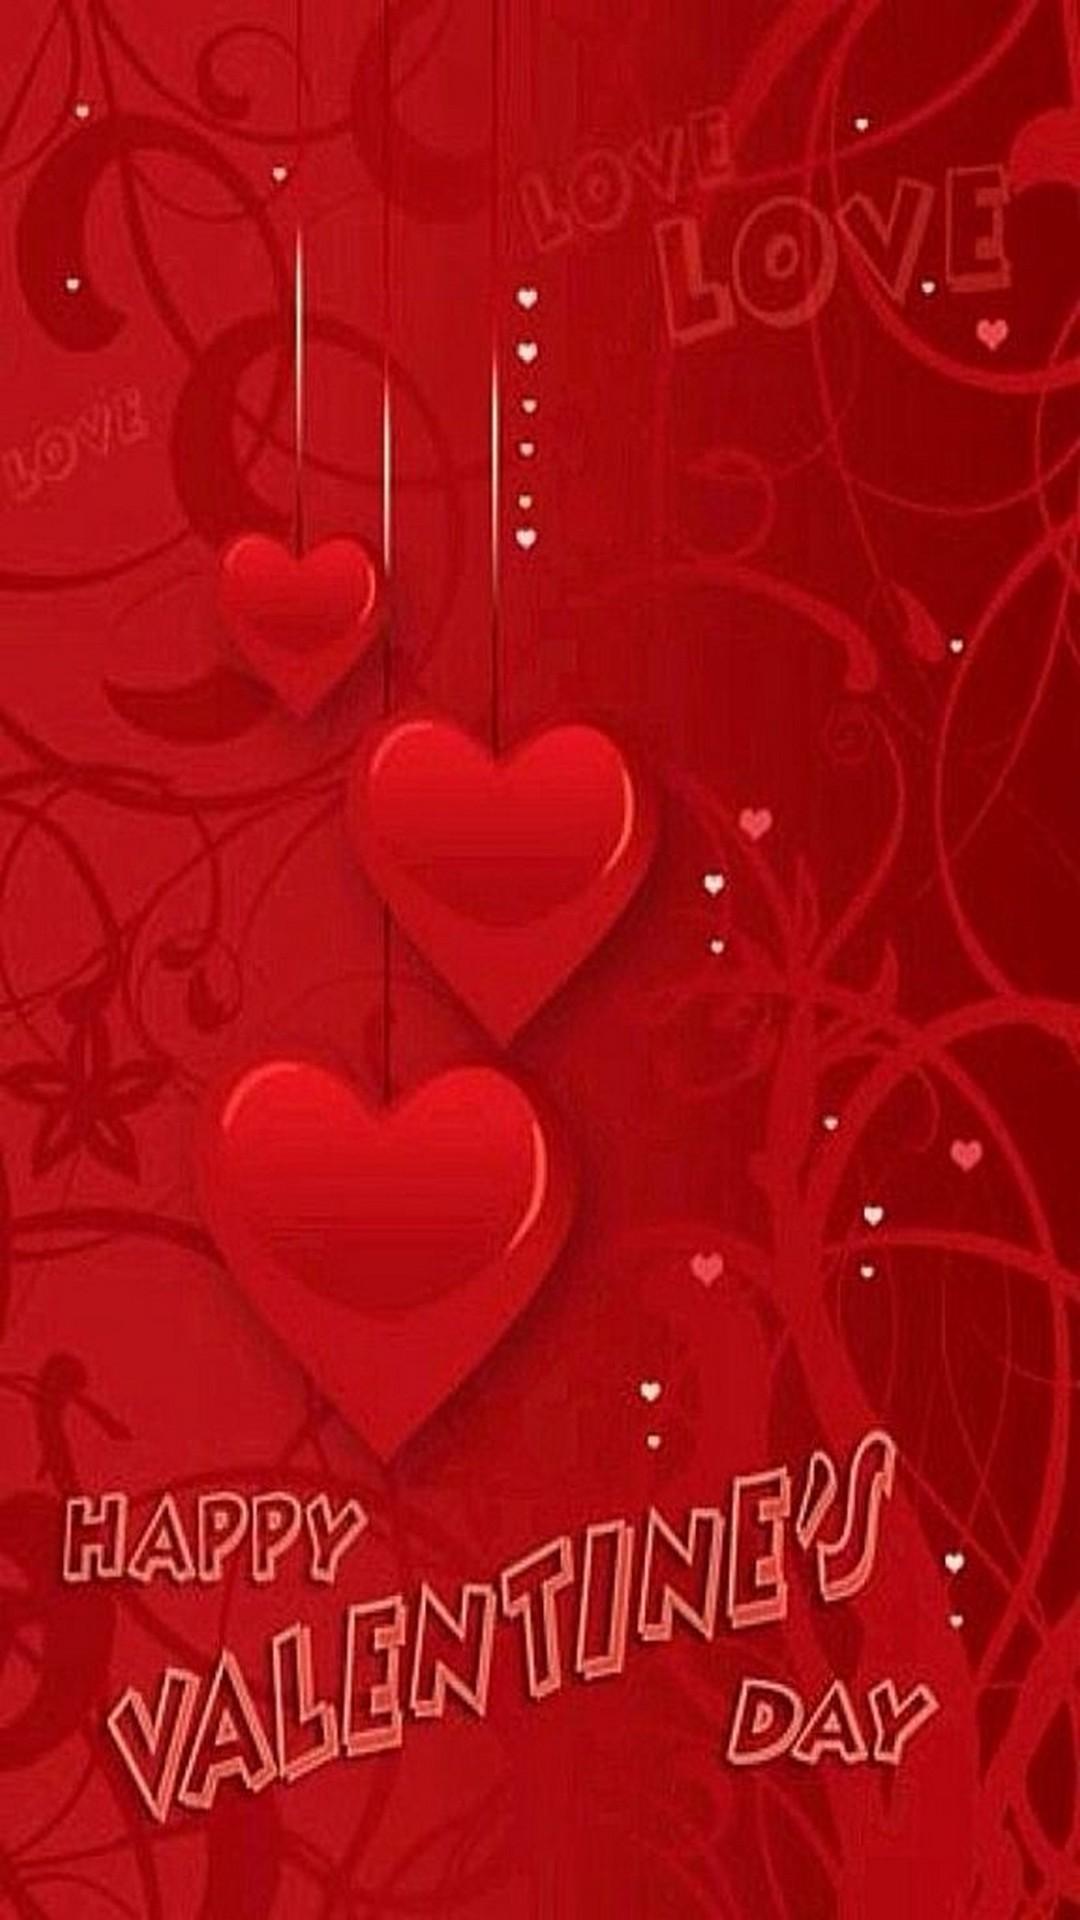 Happy Valentines Day Images For Android   2020 Android Wallpapers 1080x1920